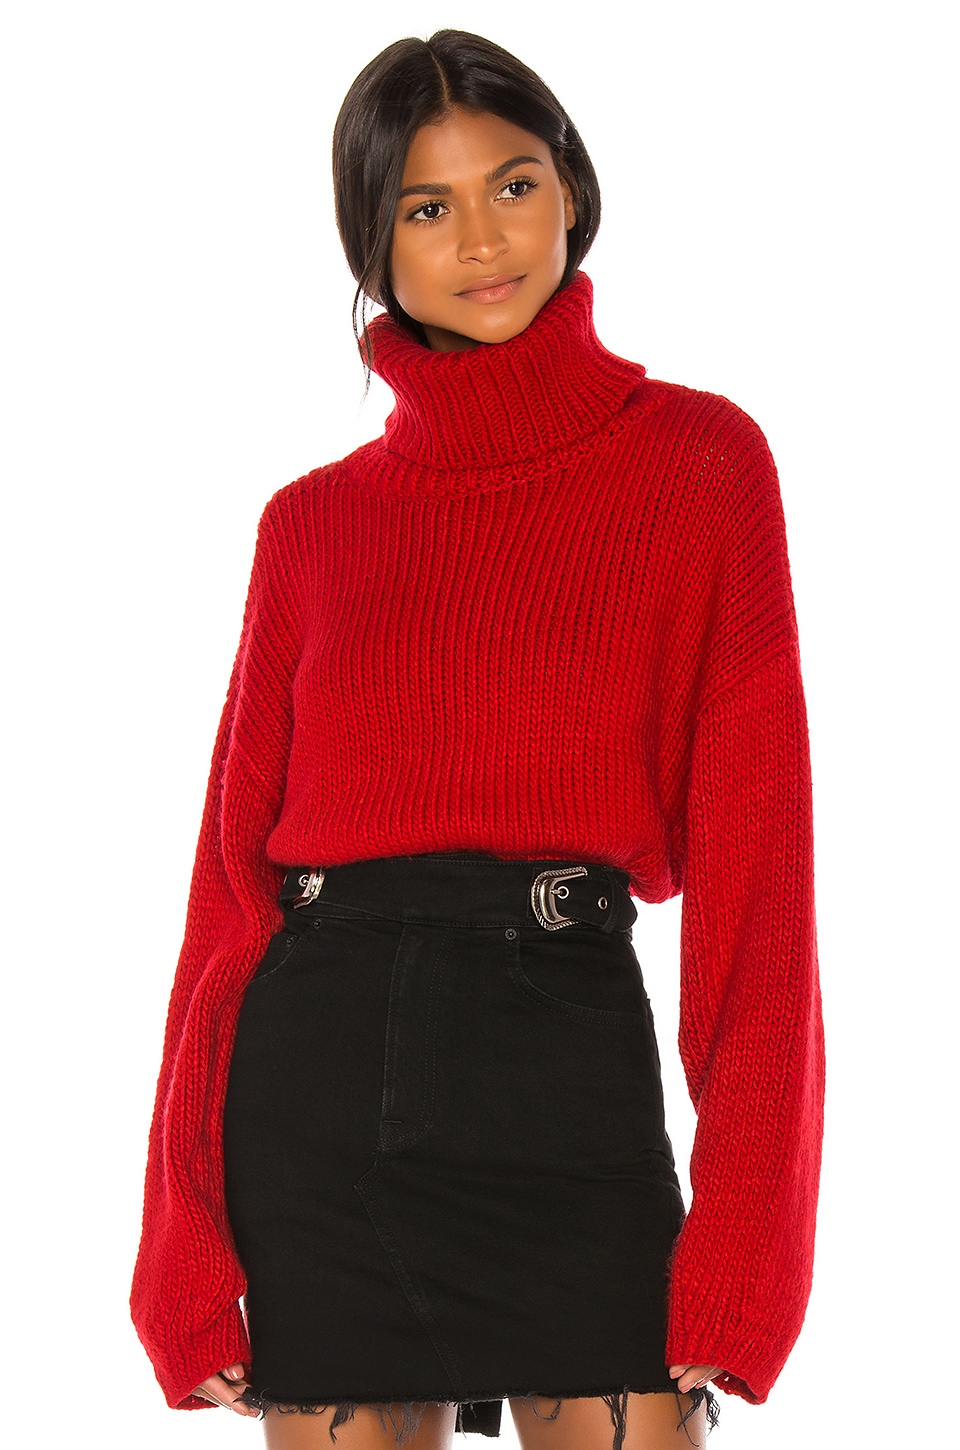 GRLFRND Samantha Turtleneck Sweater in Cherry Red